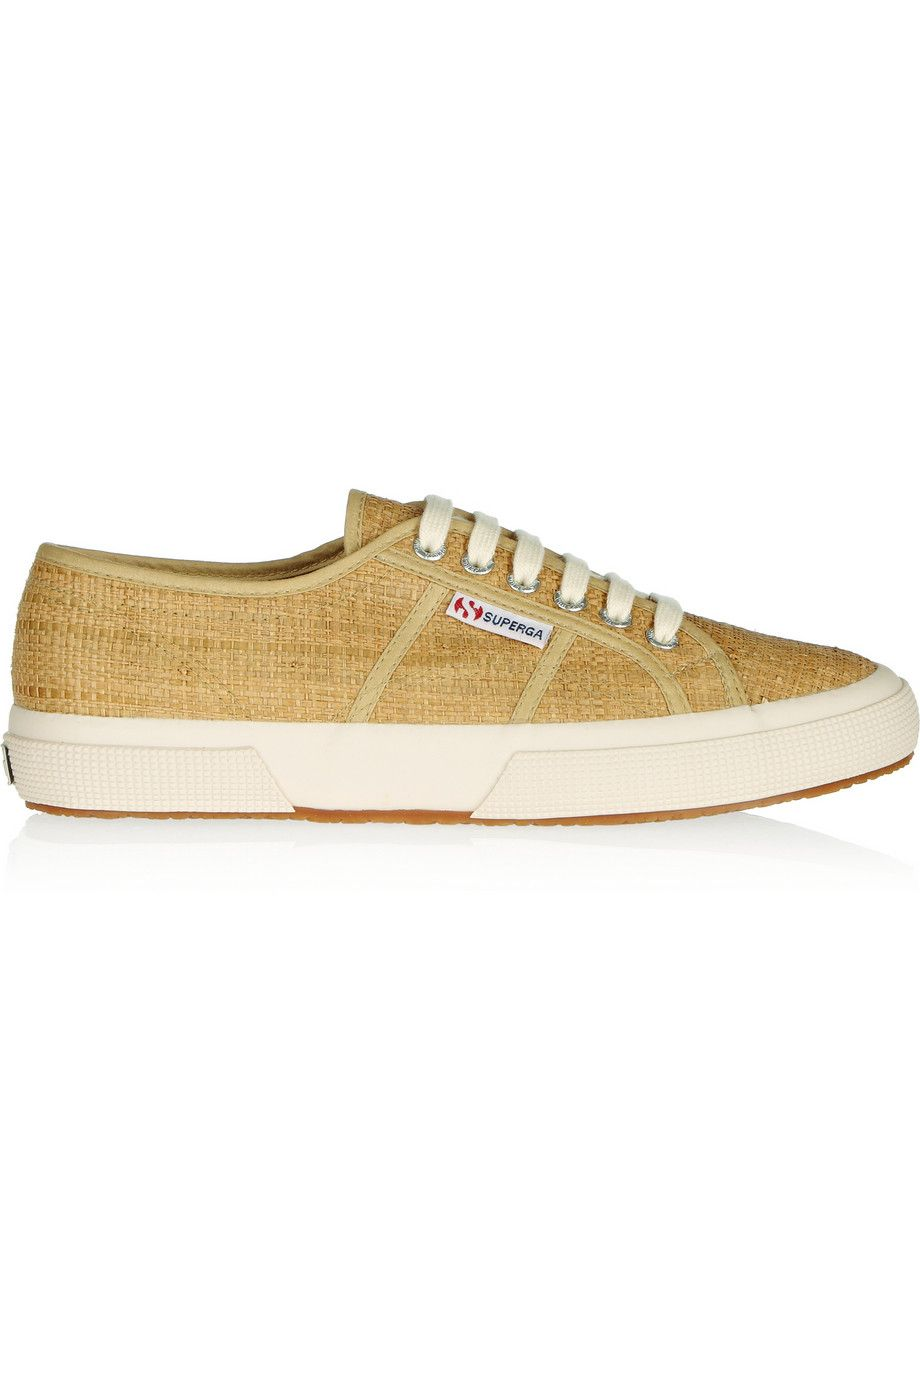 raffia supergas half off at the outnet